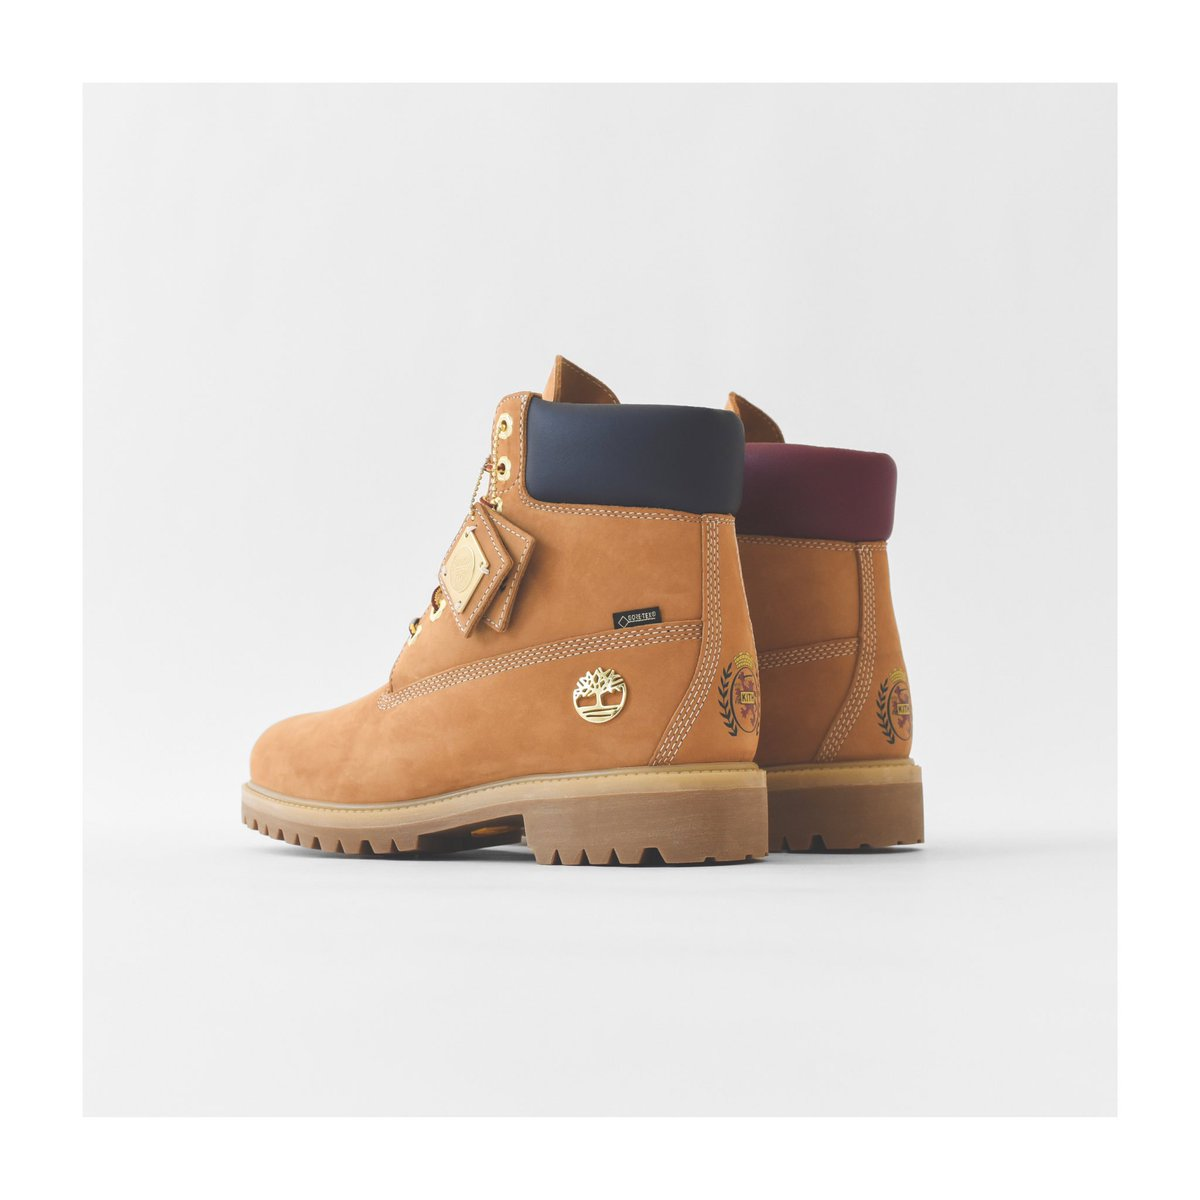 kith timberland tommy hilfiger